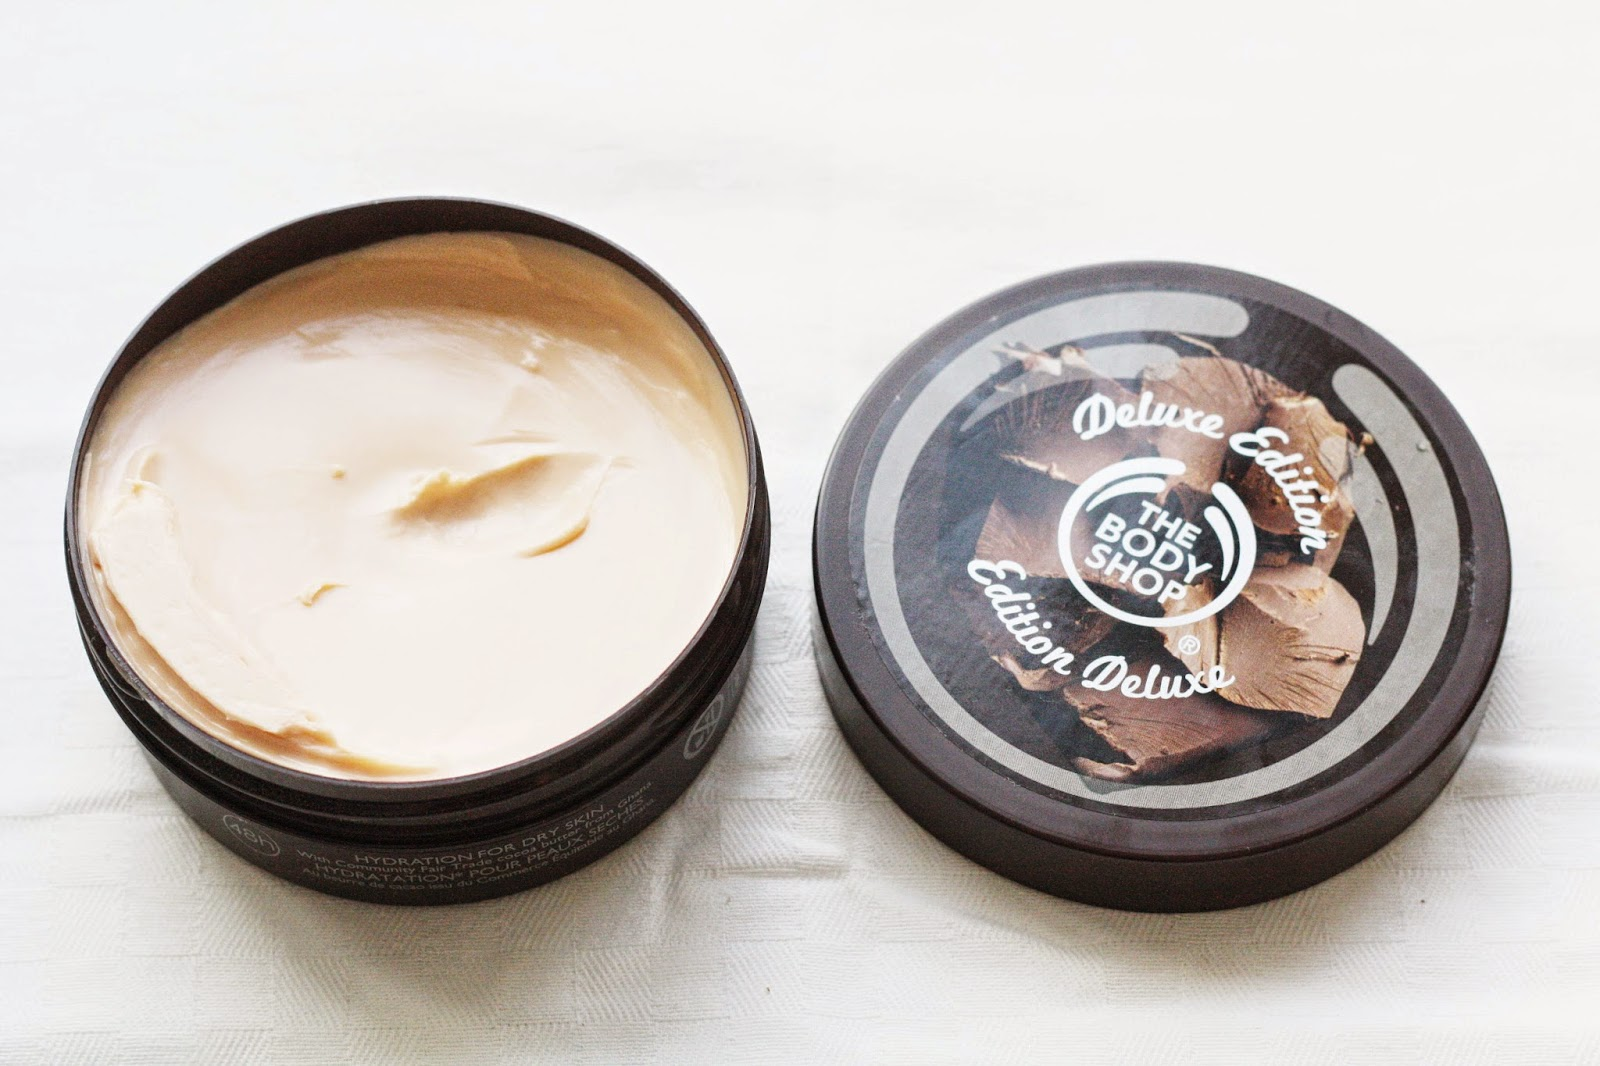 The Body Shop Chocomania Body Butter Review